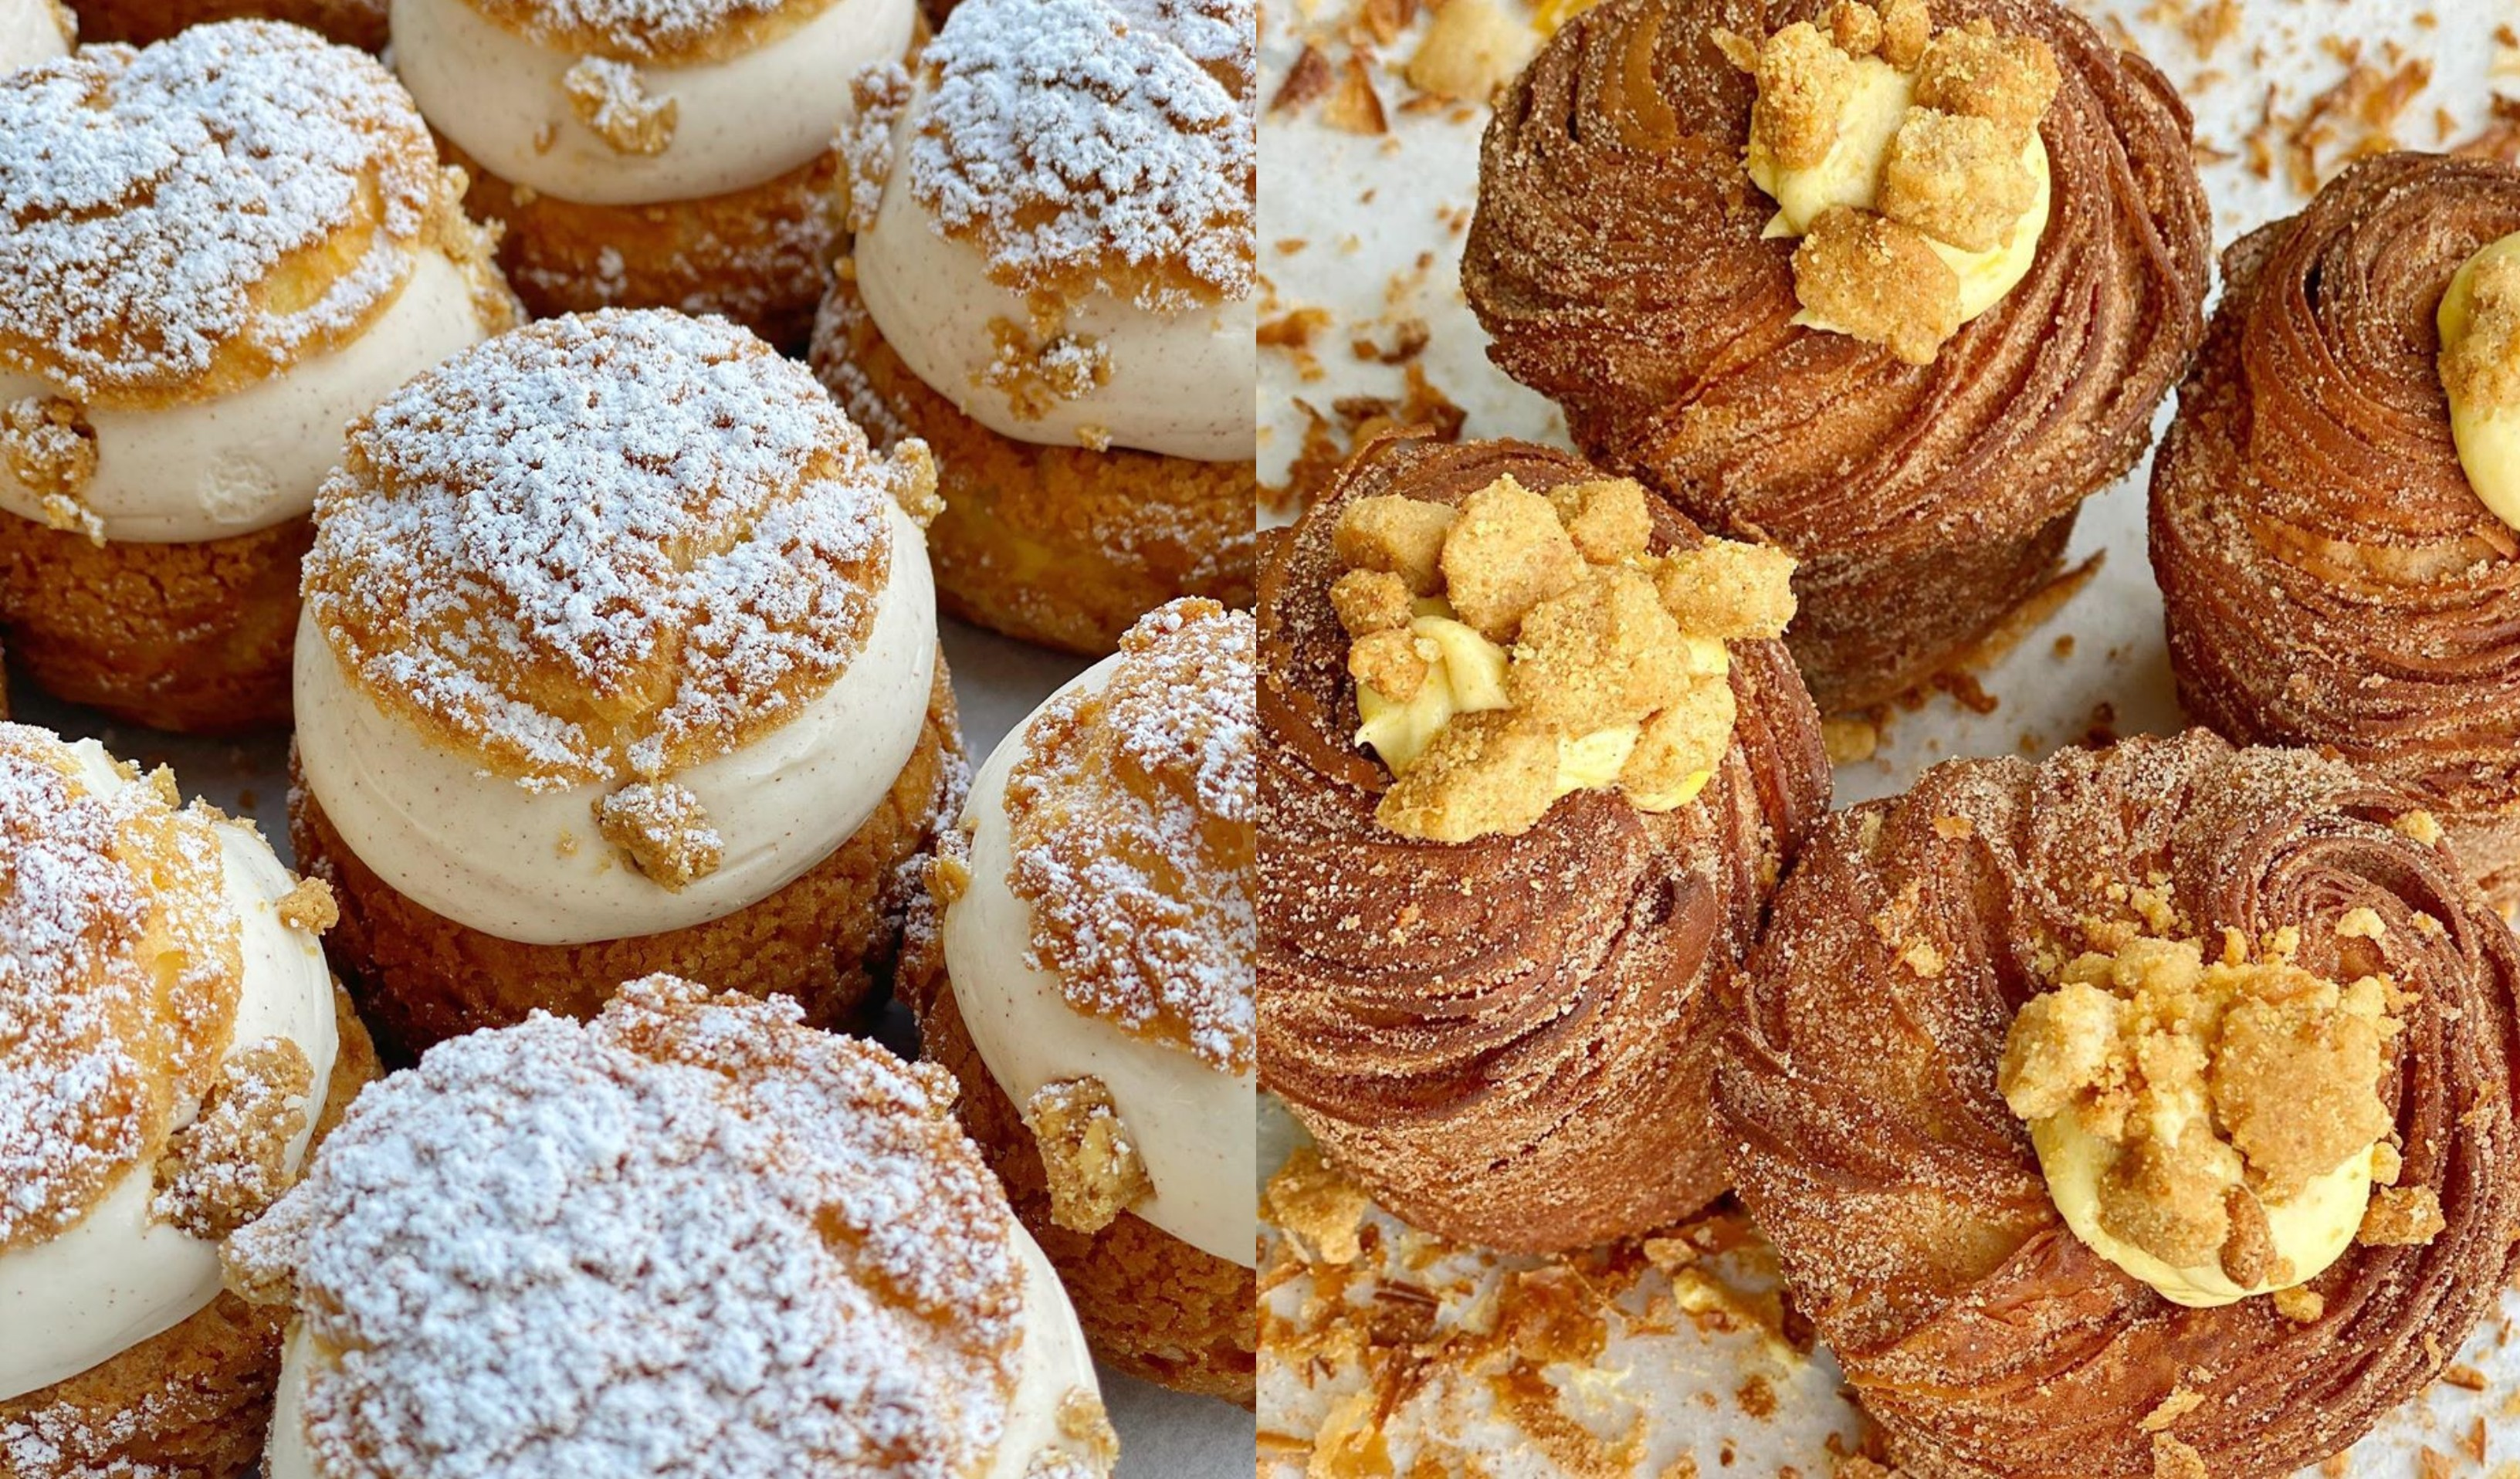 Decadent apple crisp cream puffs and pumpkin cheesecake cruffins crowned with house-made graham cracker streusel